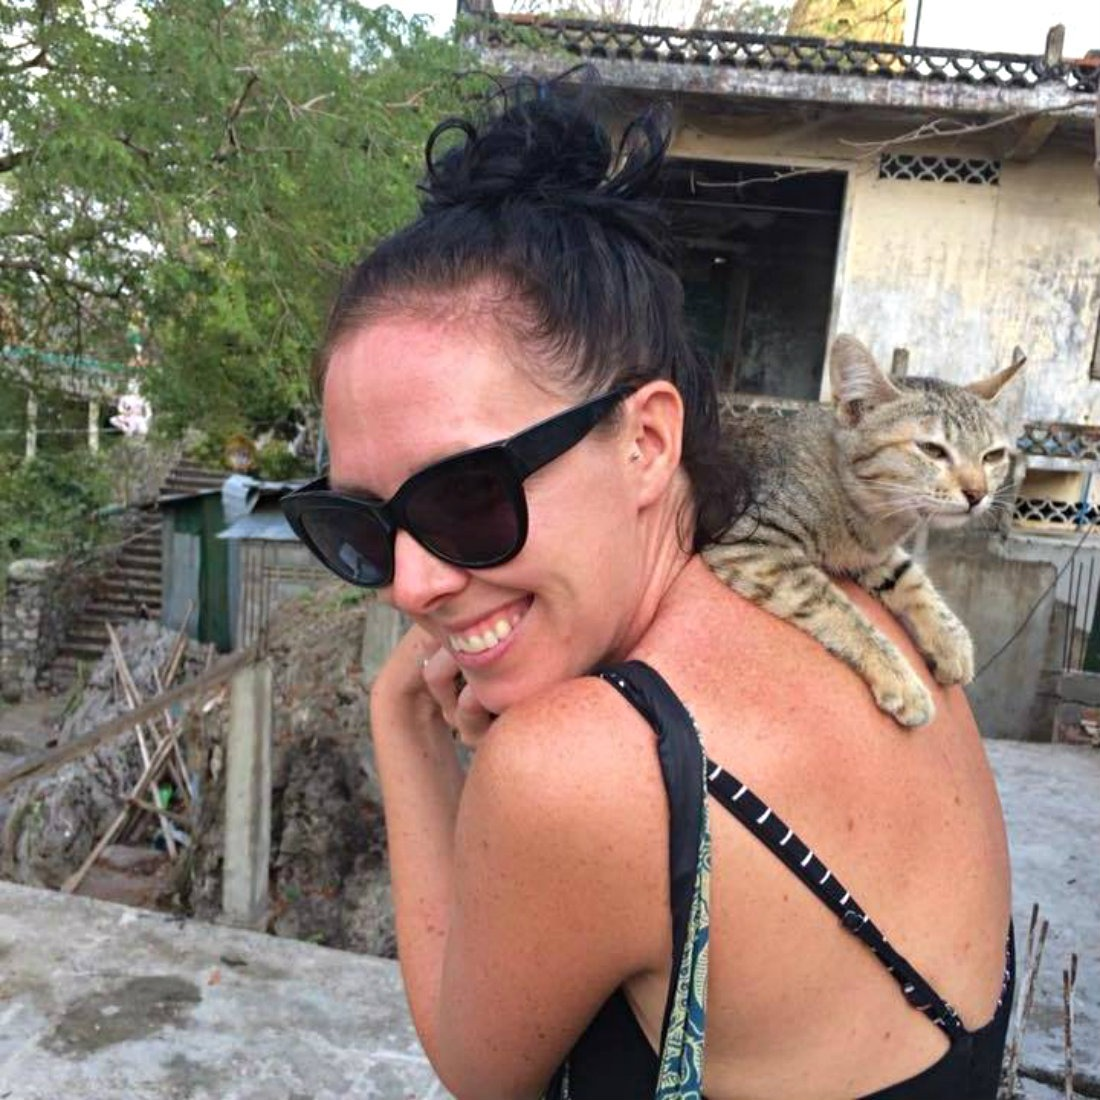 Not having pets is a downside to living a nomadic life